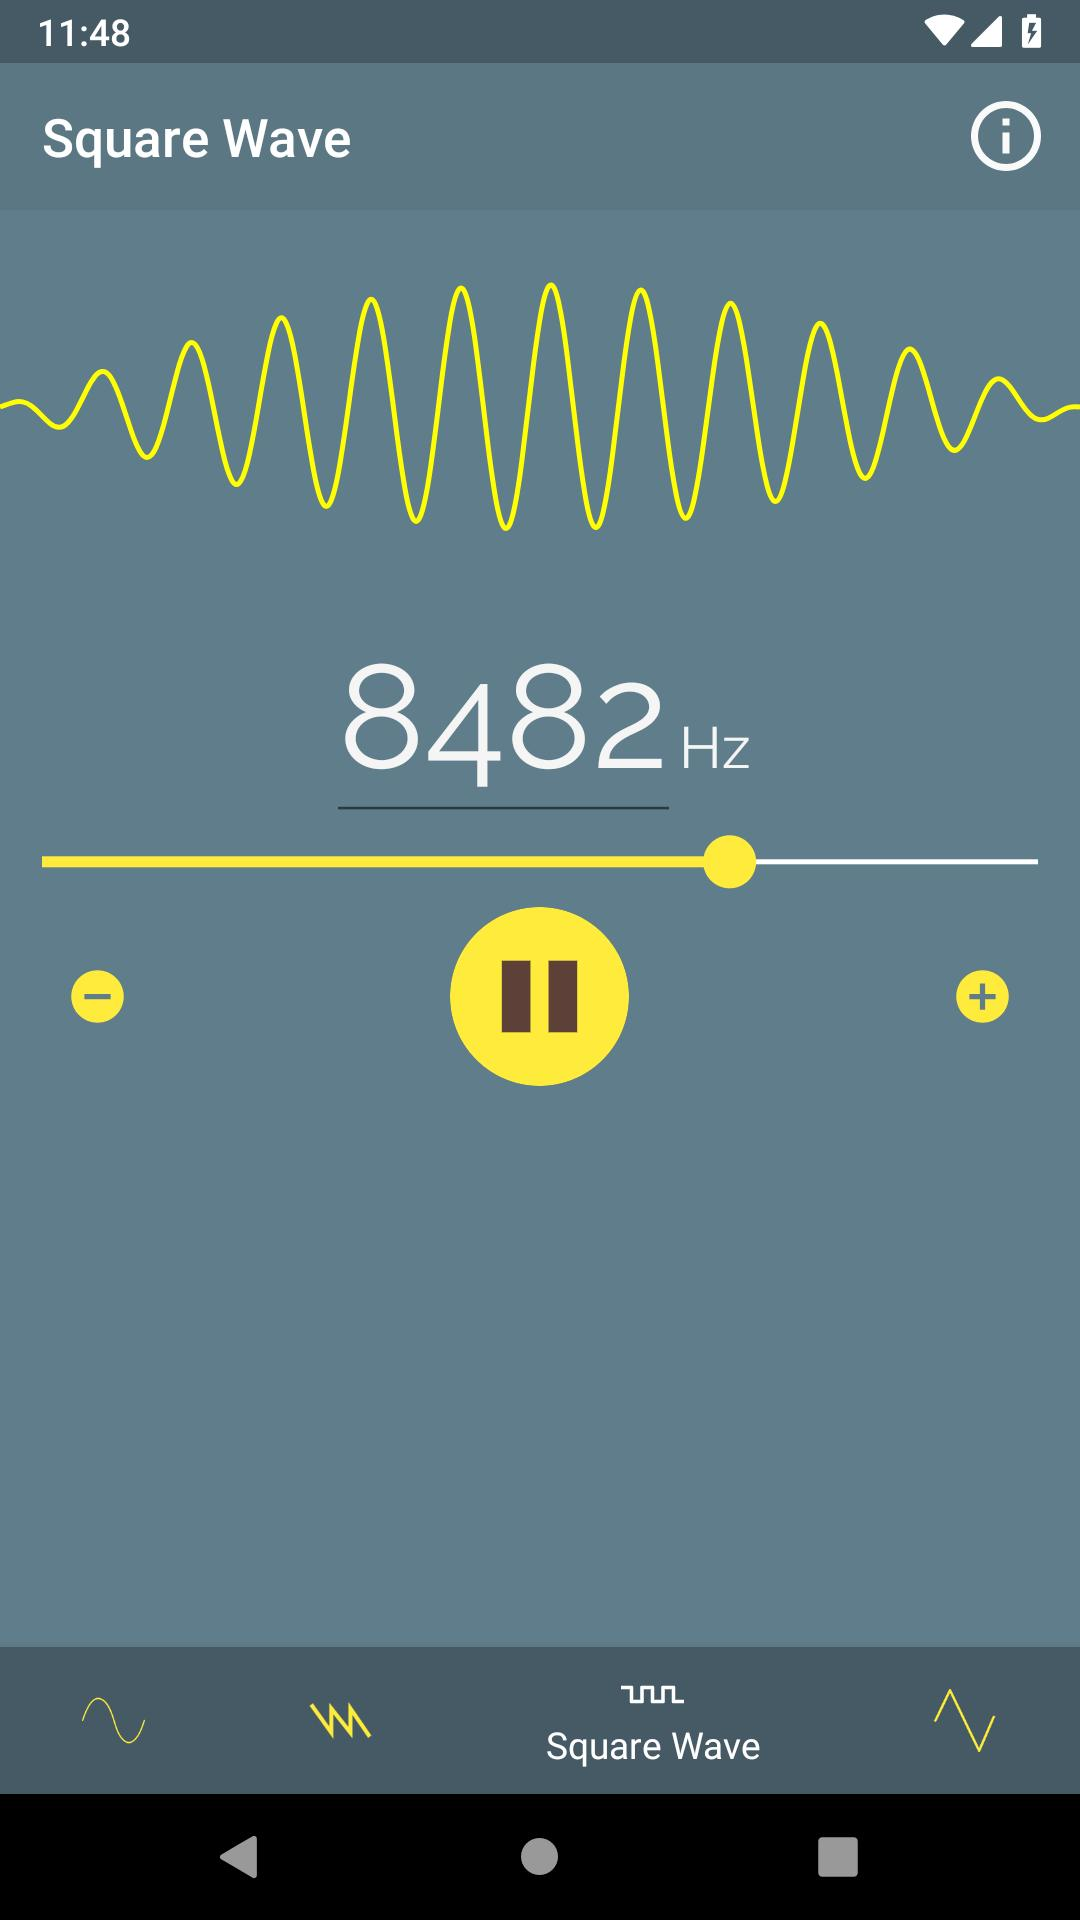 Sound Frequency Generator ♫ (1Hz - 25kHz) for Android - APK Download